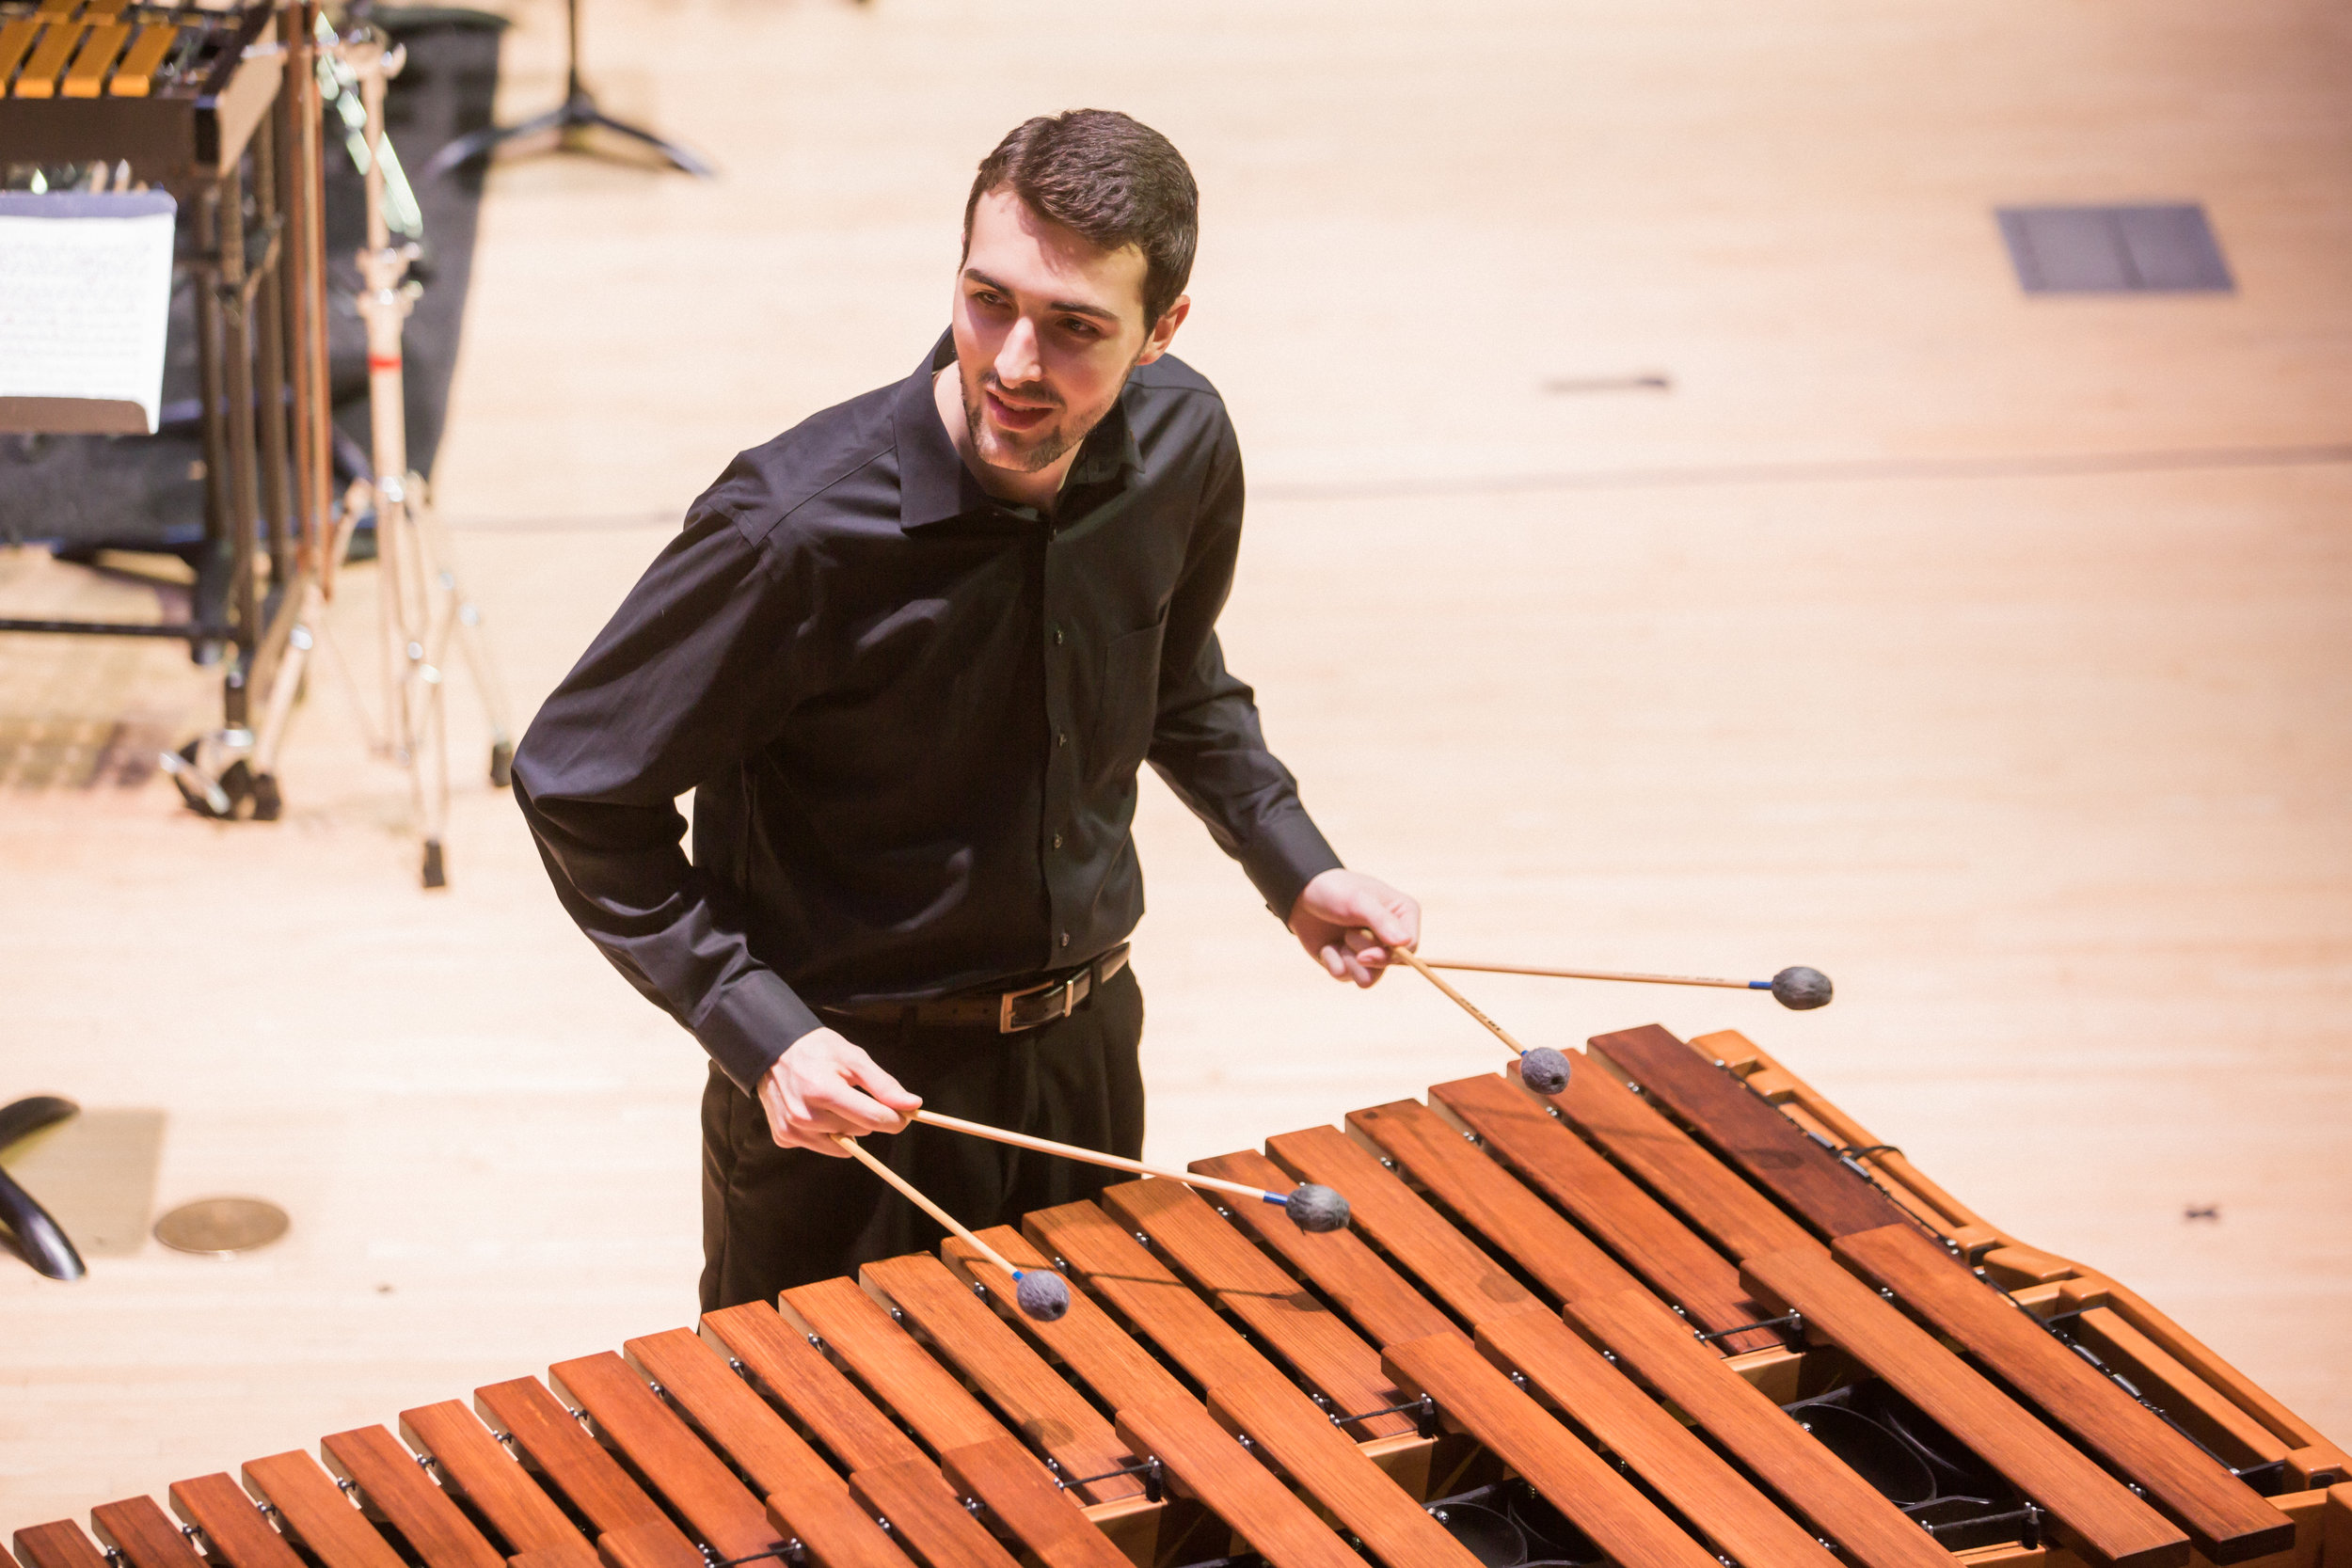 School of Music Percussion Ensemble 533 edit.JPG